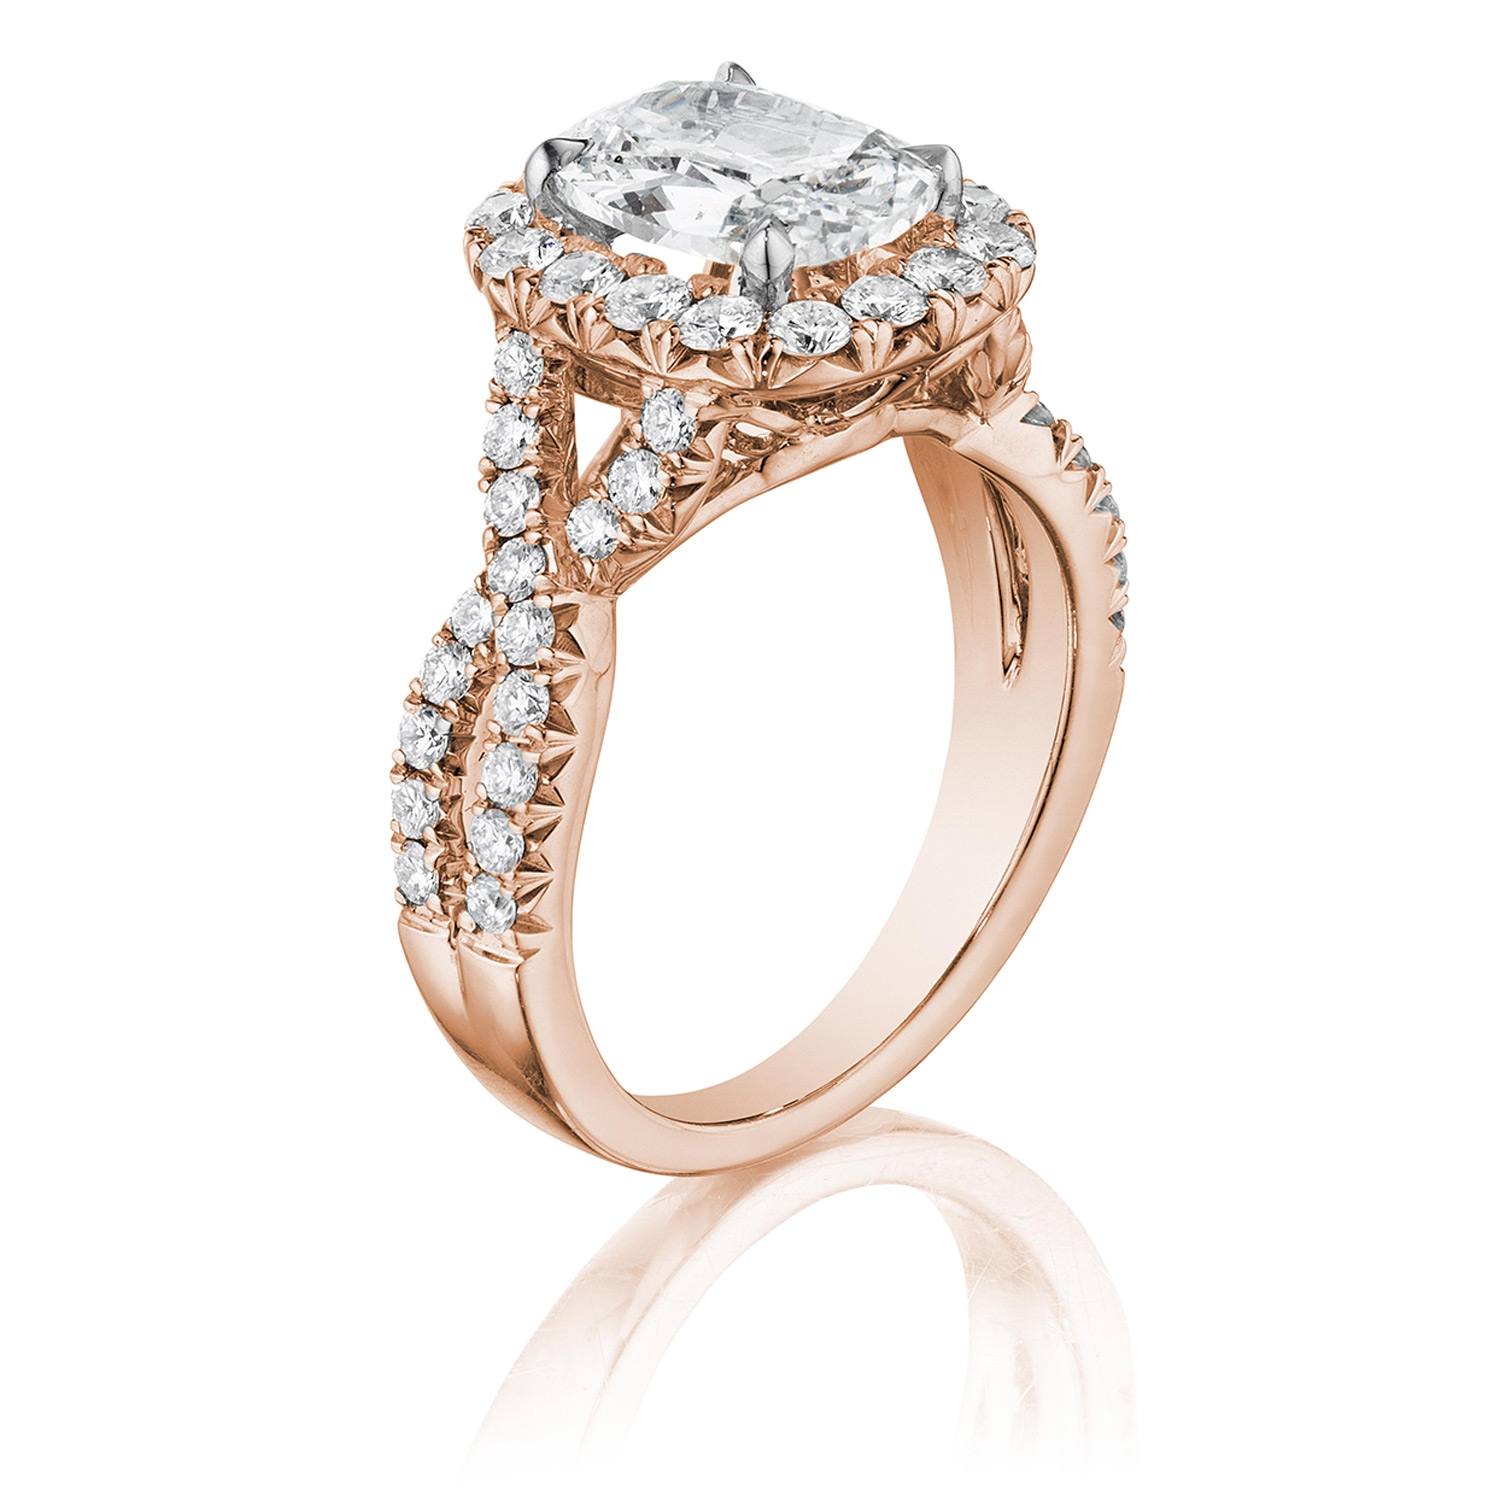 Henri Daussi AW Cushion Halo Interlaced Shank Diamond Engagement Ring Alternative View 2